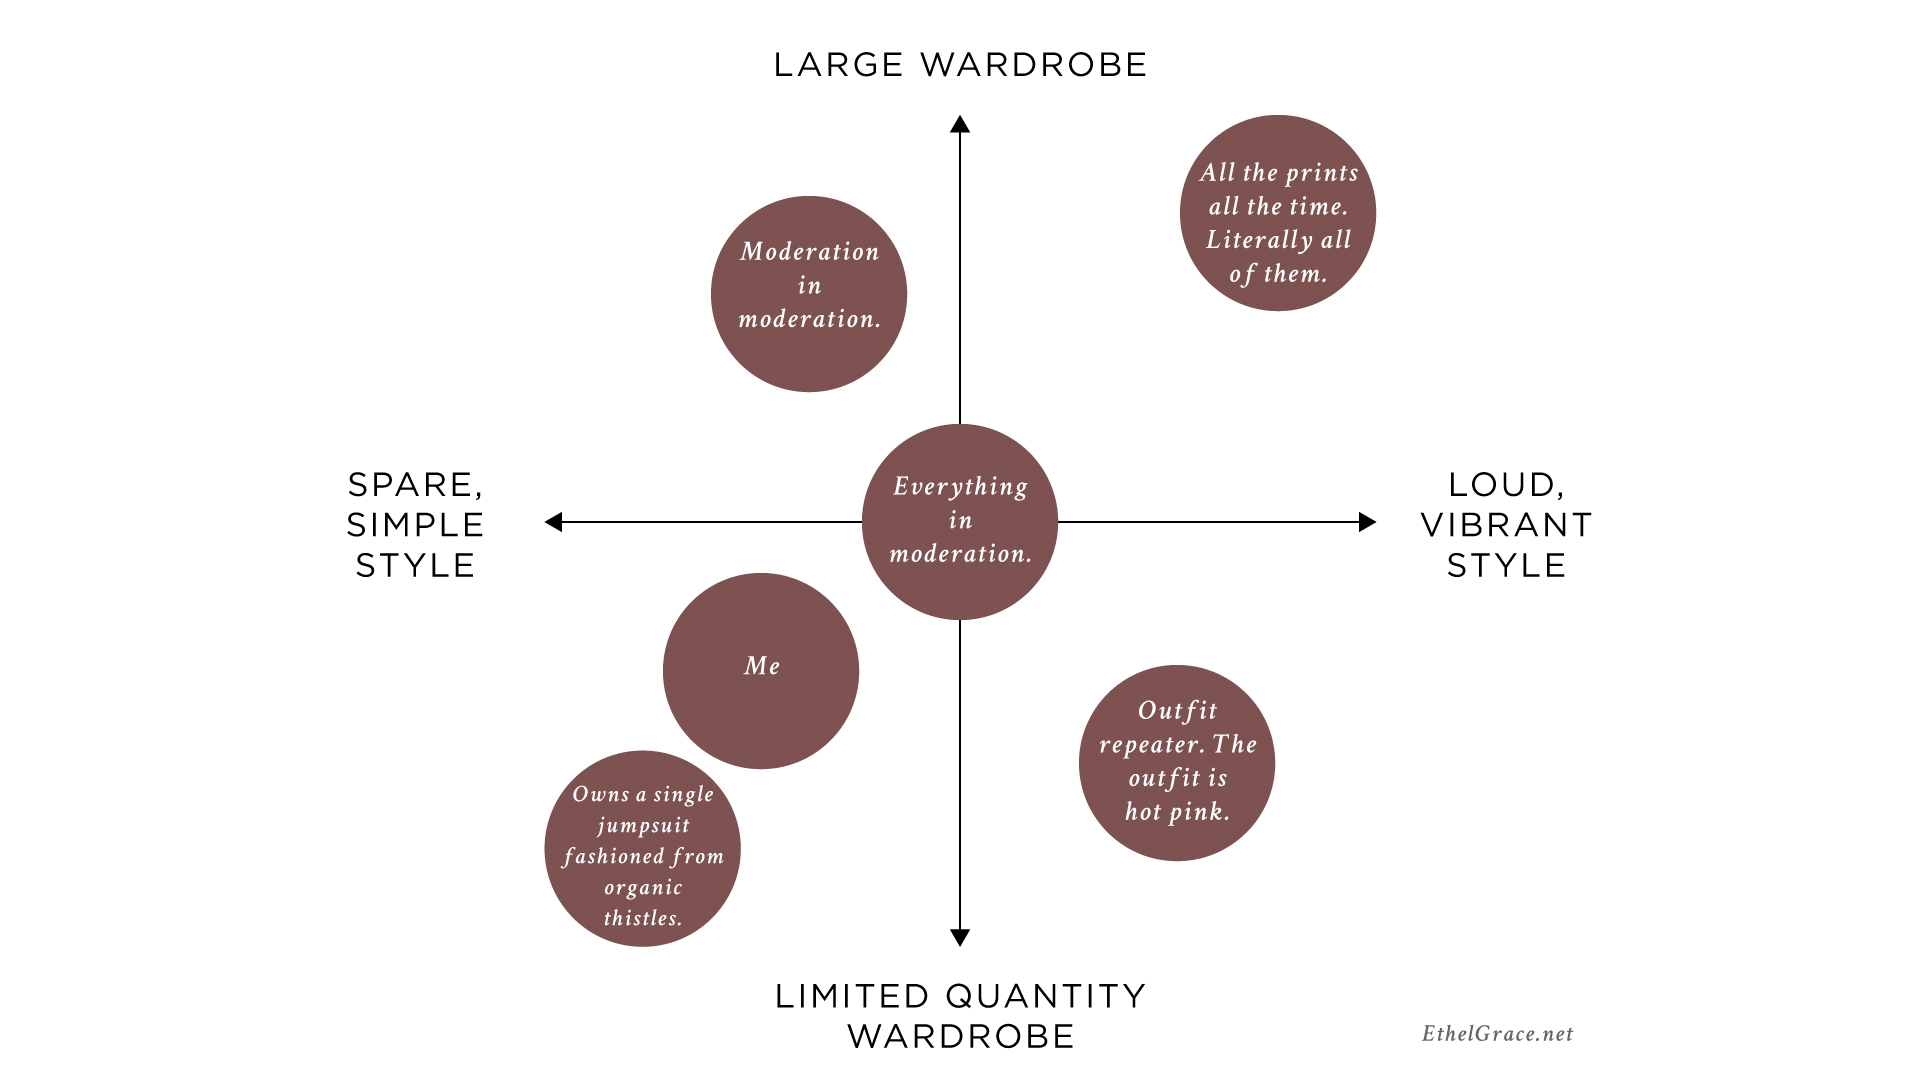 As a side note, my personal mix of a smallish-but-not-capsule wardrobe + more minimal design preferences also tend to overlap with a desire for sustainability and ethics in manufacturing, neither of which are qualities exclusive to minimalism — I think that sometimes get lost in the conversation around slow fashion.